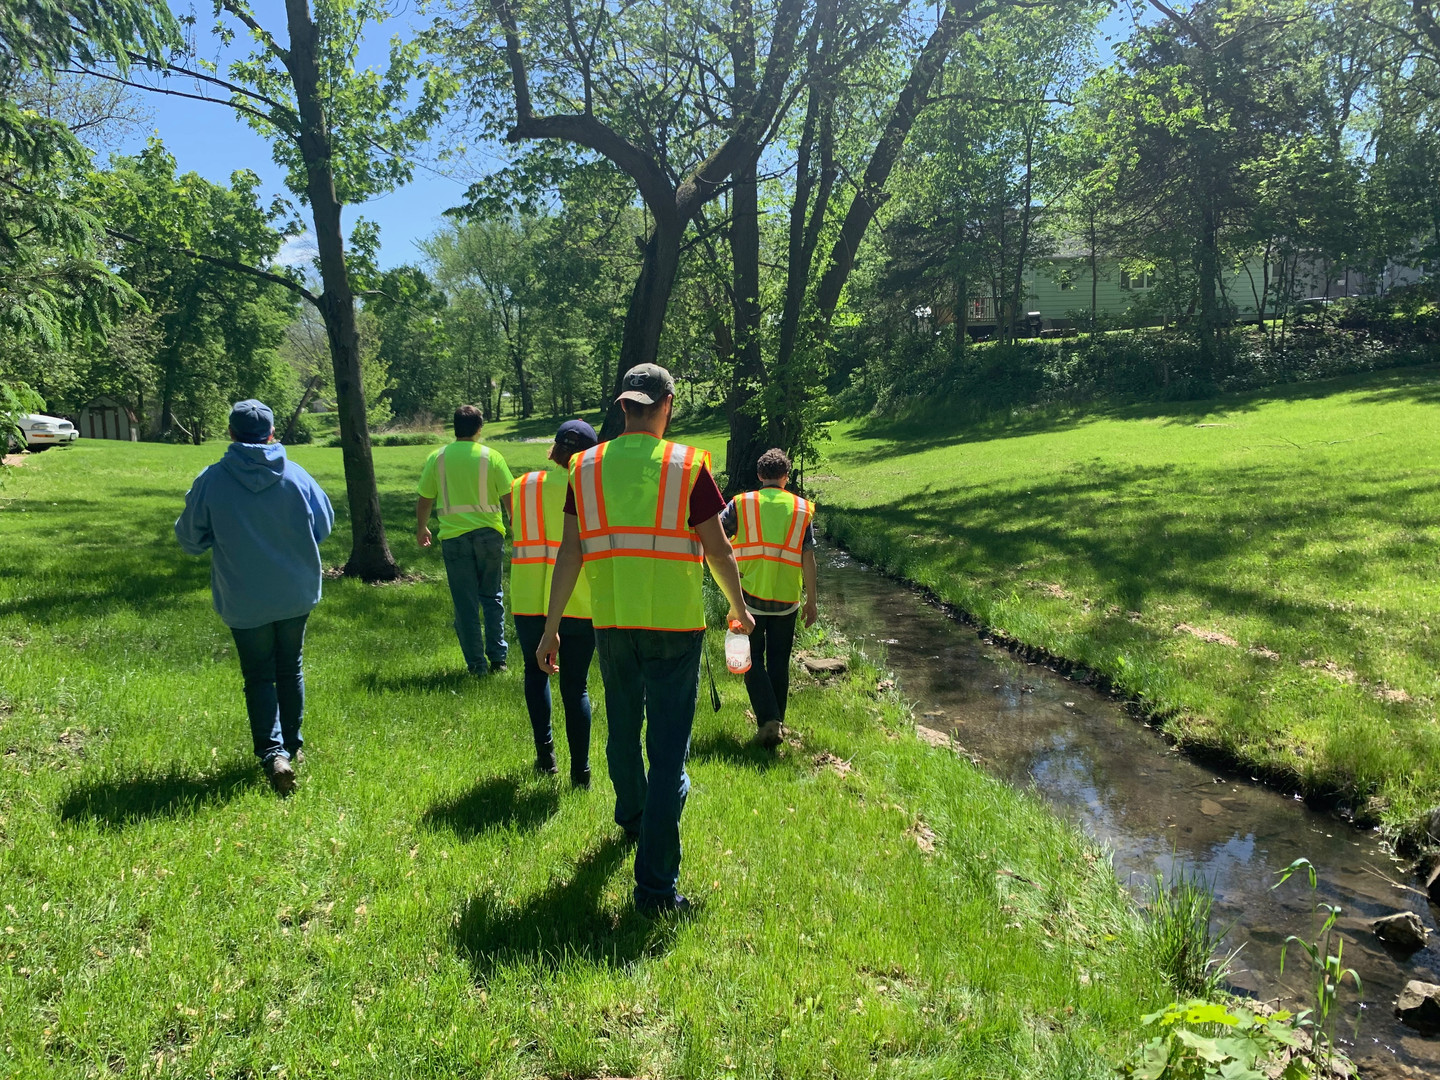 Summer members surveying for the City of Oskaloosa.